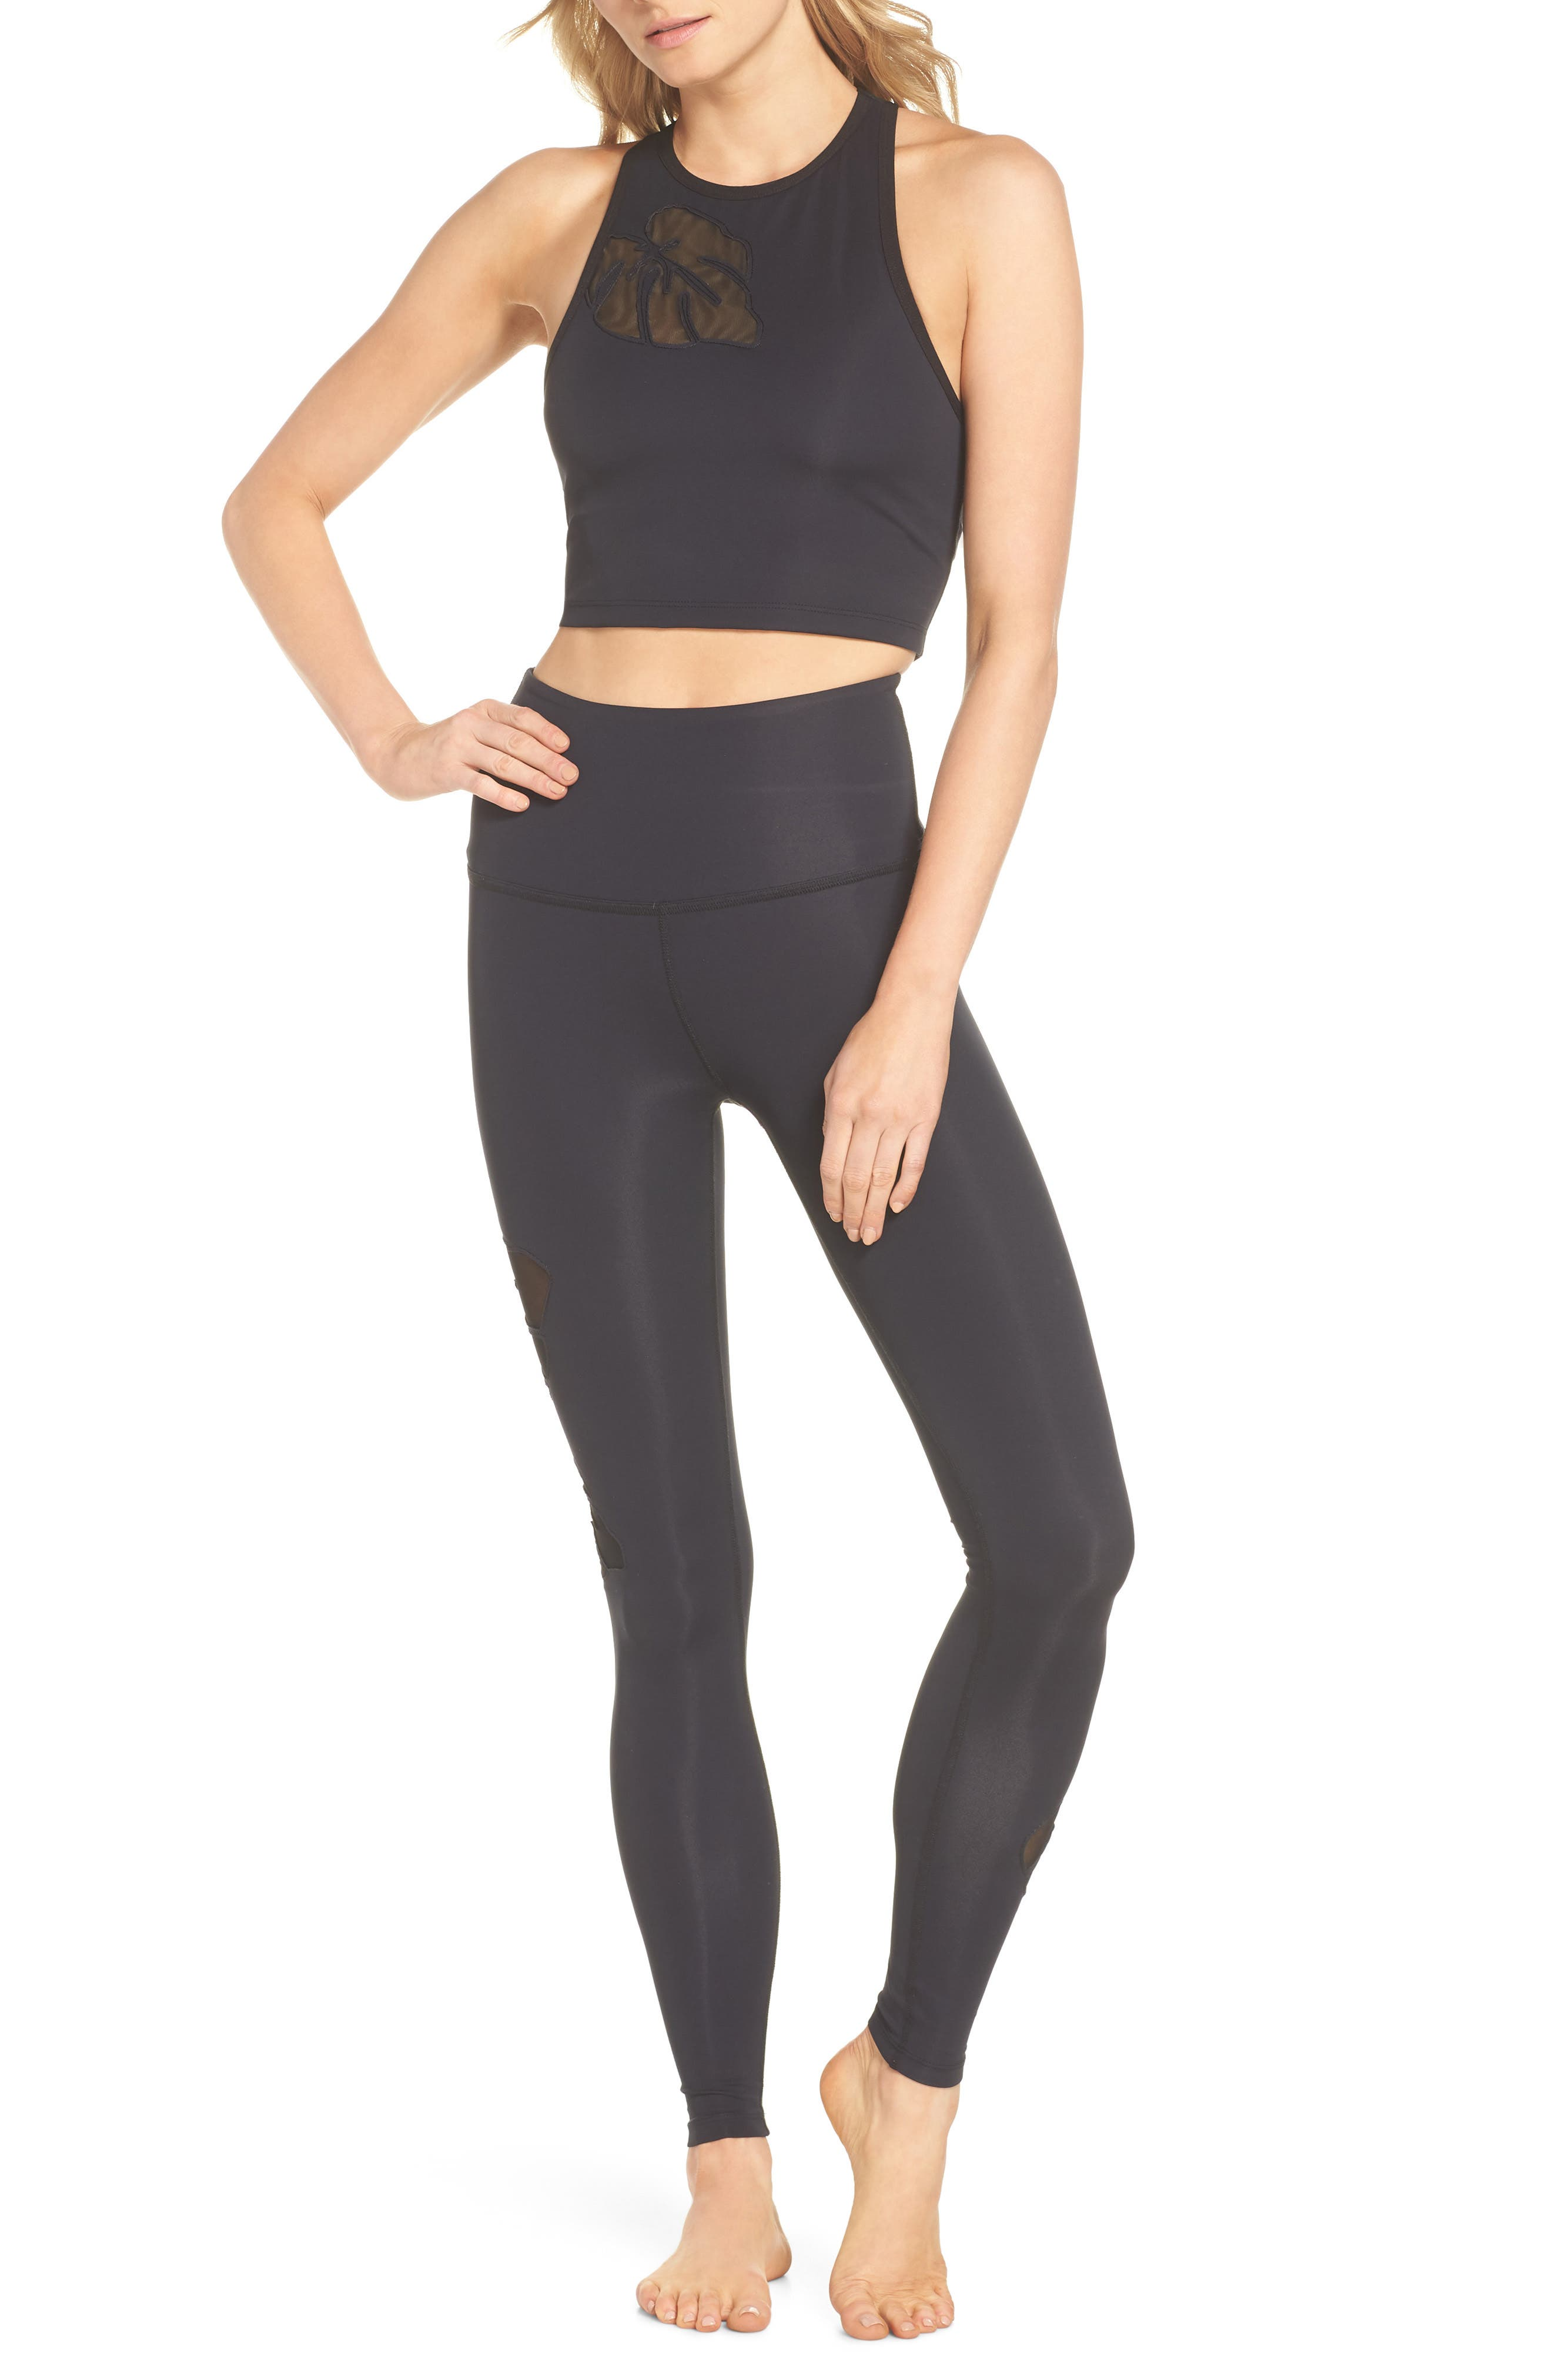 Take Leaf High Waist Leggings,                             Alternate thumbnail 8, color,                             002